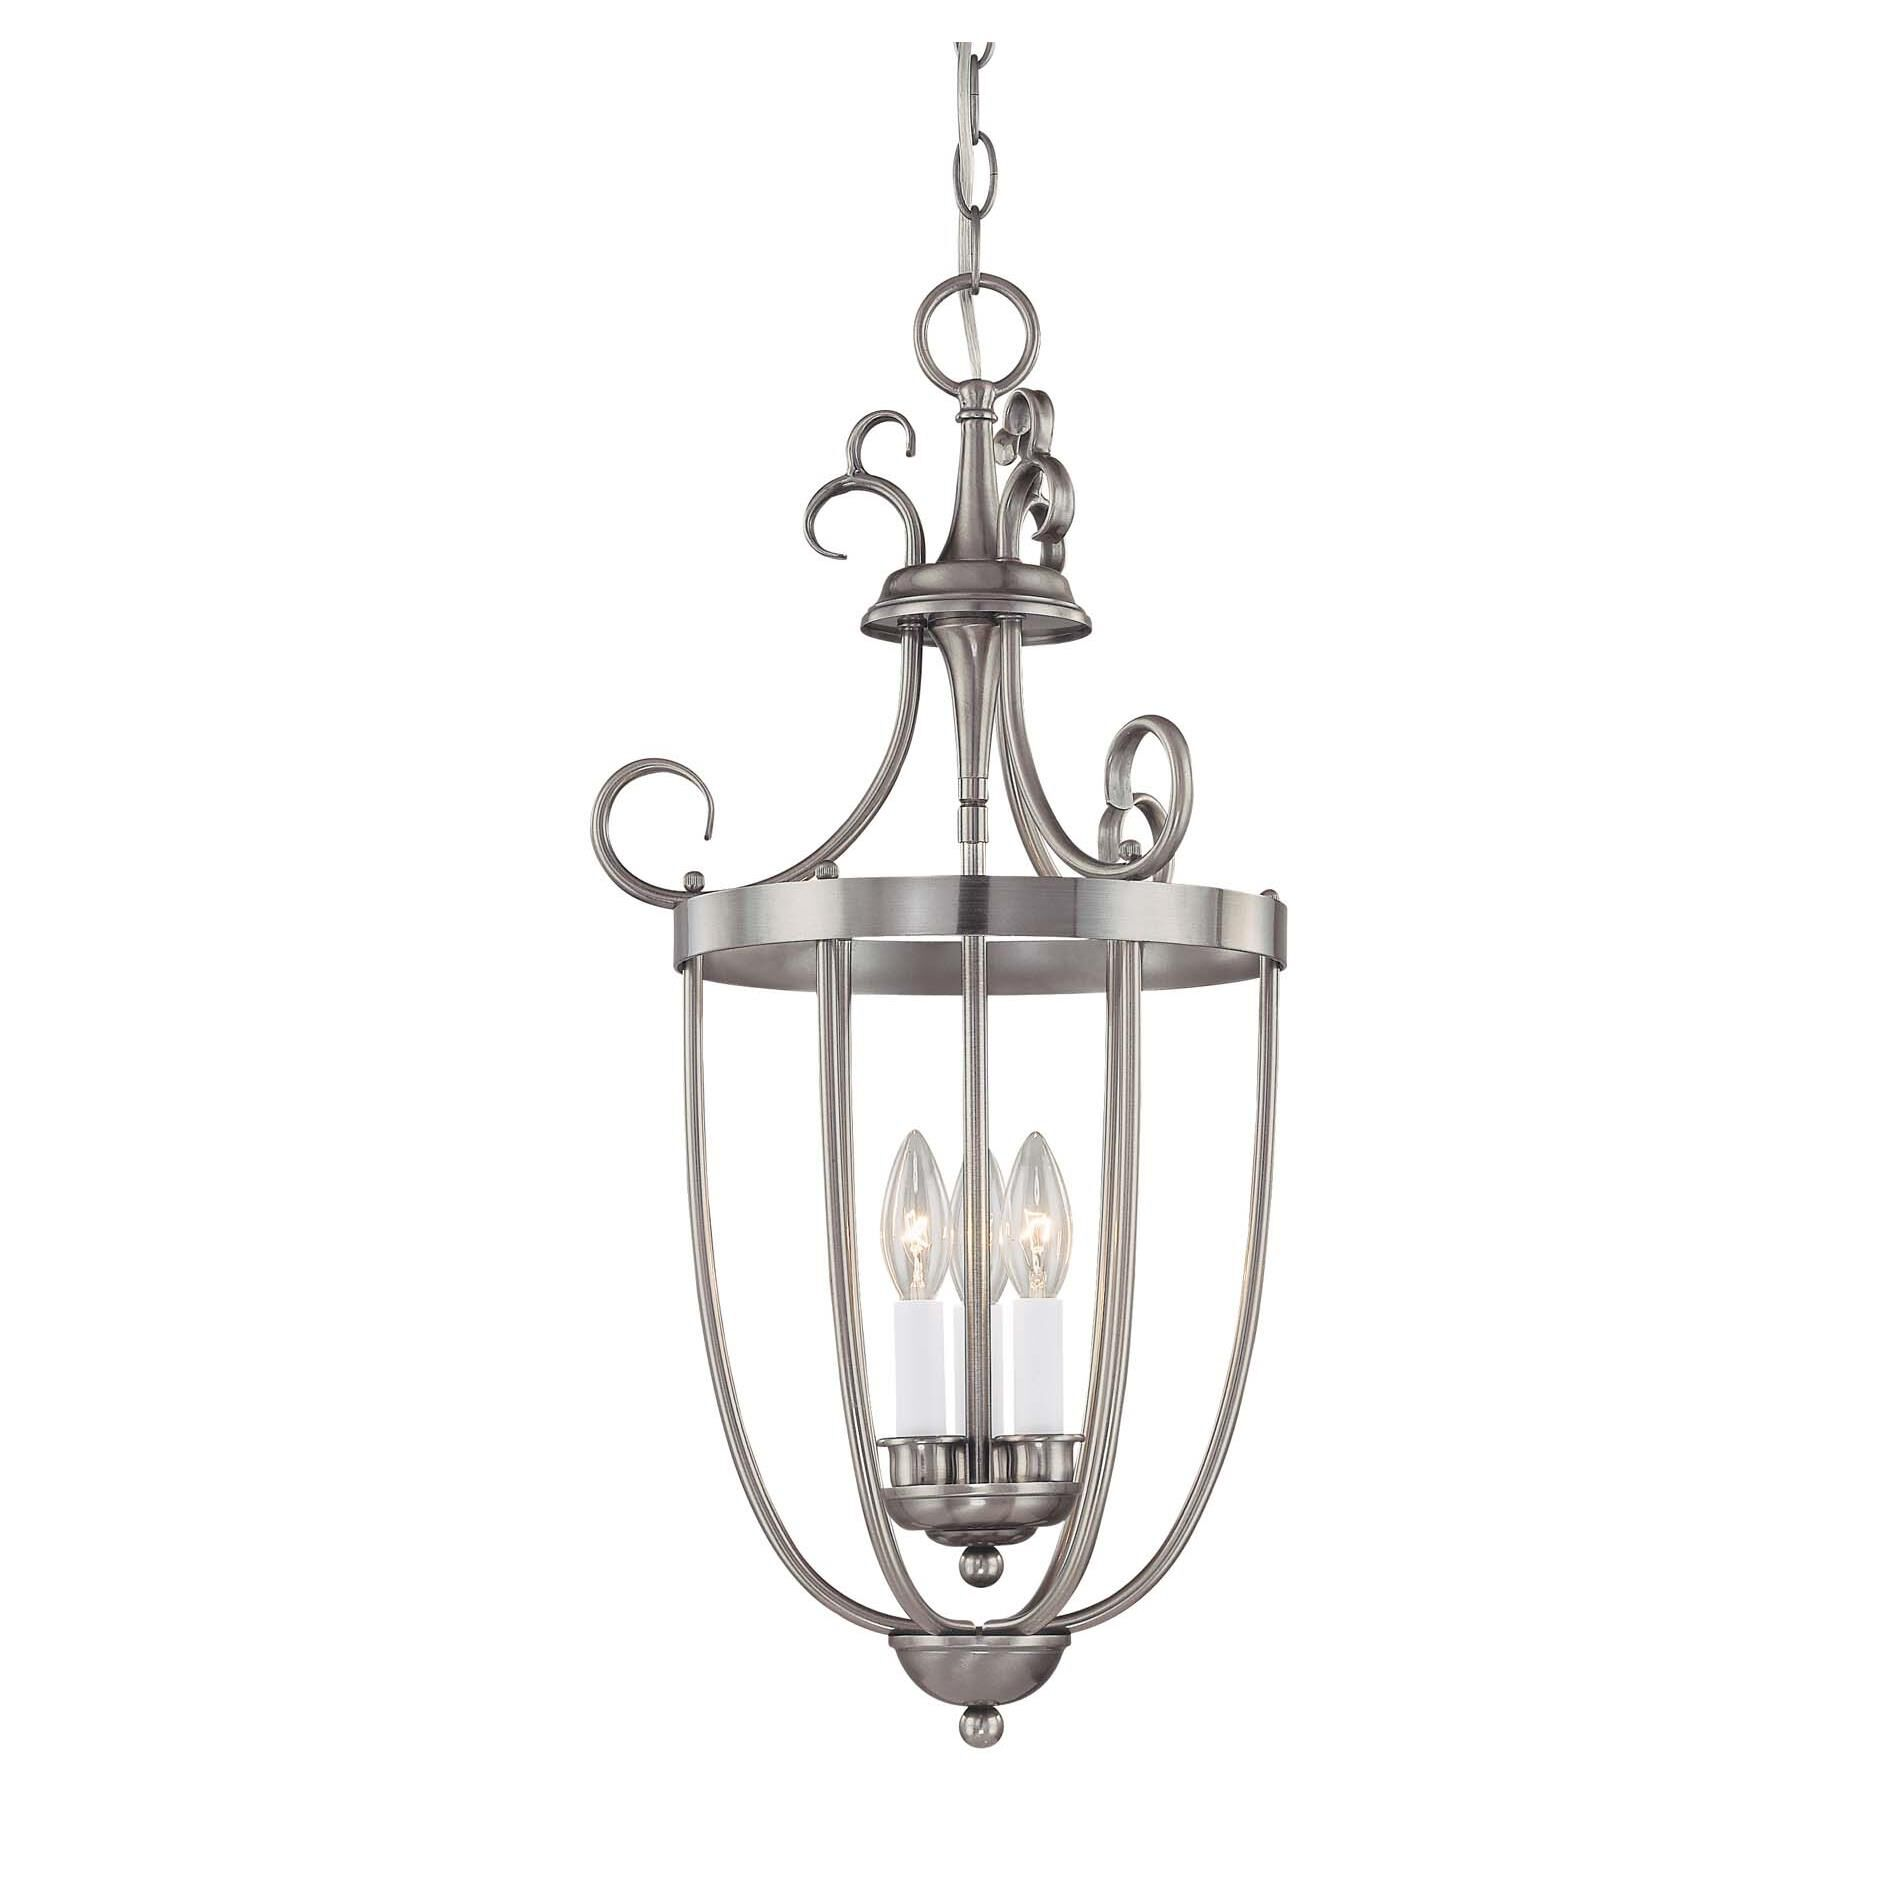 Savoy House Foyer 13 Inch Cage Pendant Foyer - 3p-80200-3-69 - Transitional Cage Pendant